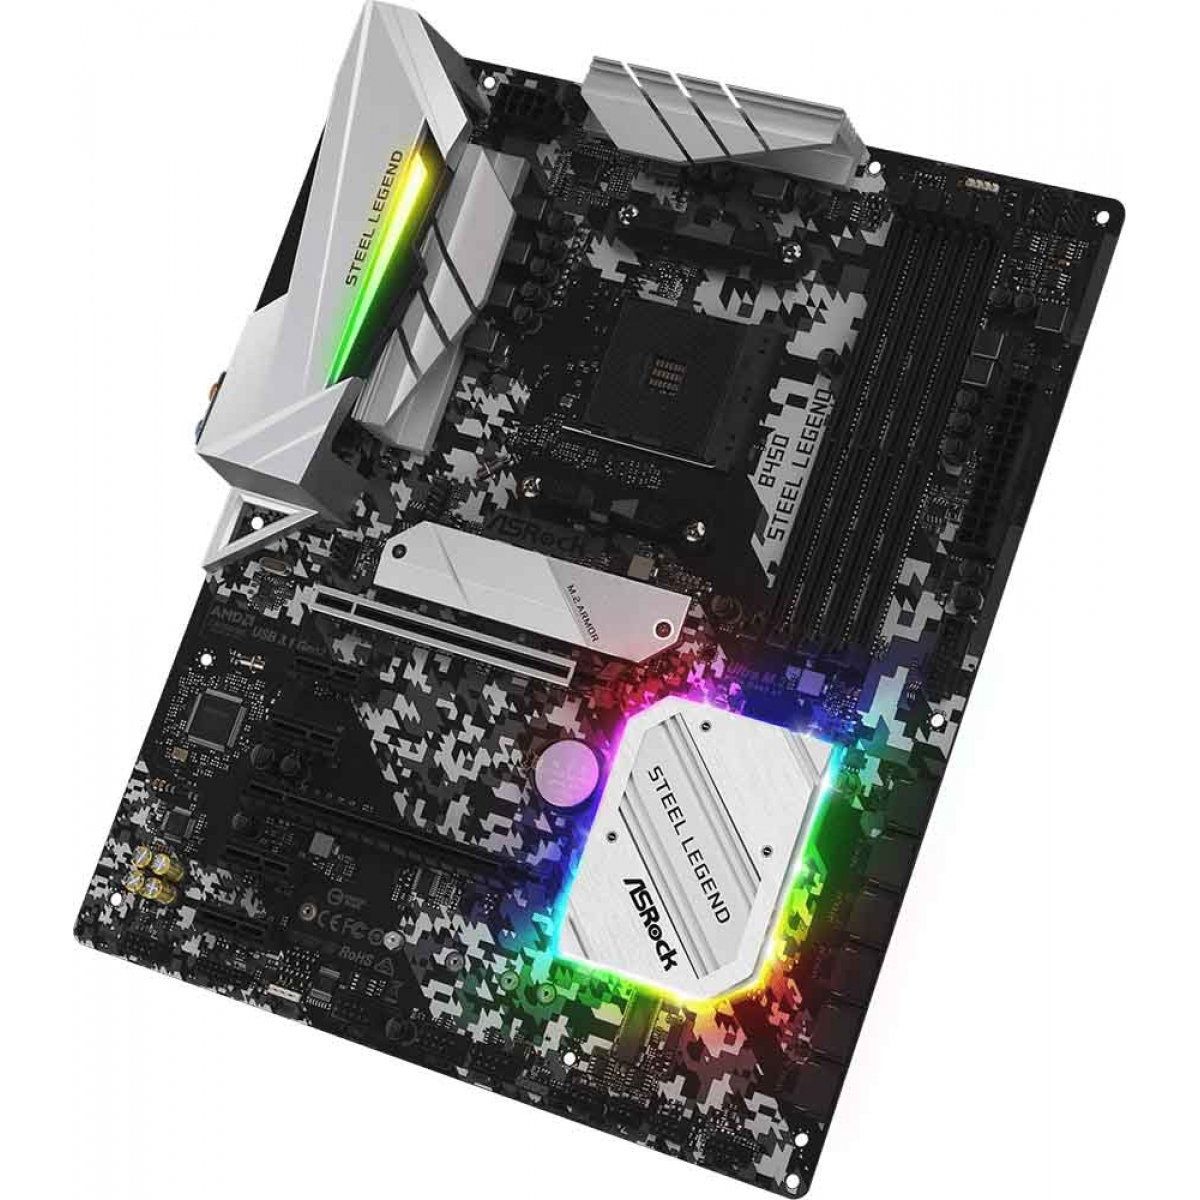 Placa Mãe ASRock B450 Steel Legend, Chipset B450, AMD AM4, ATX, DDR4